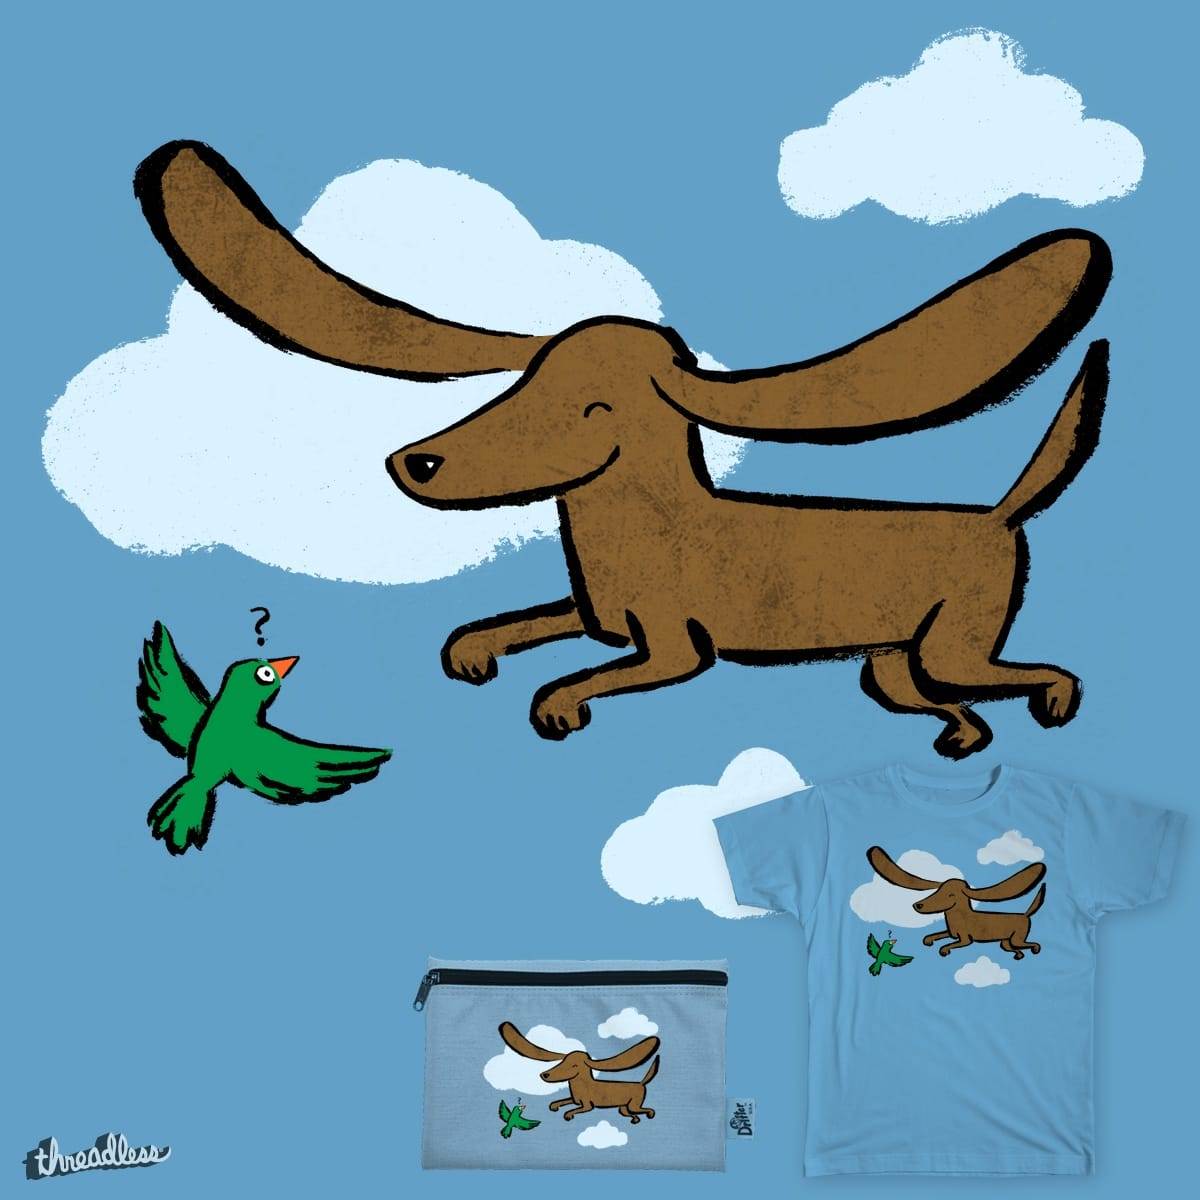 Ringo the flying sausage dog by theserestlesshands on Threadless